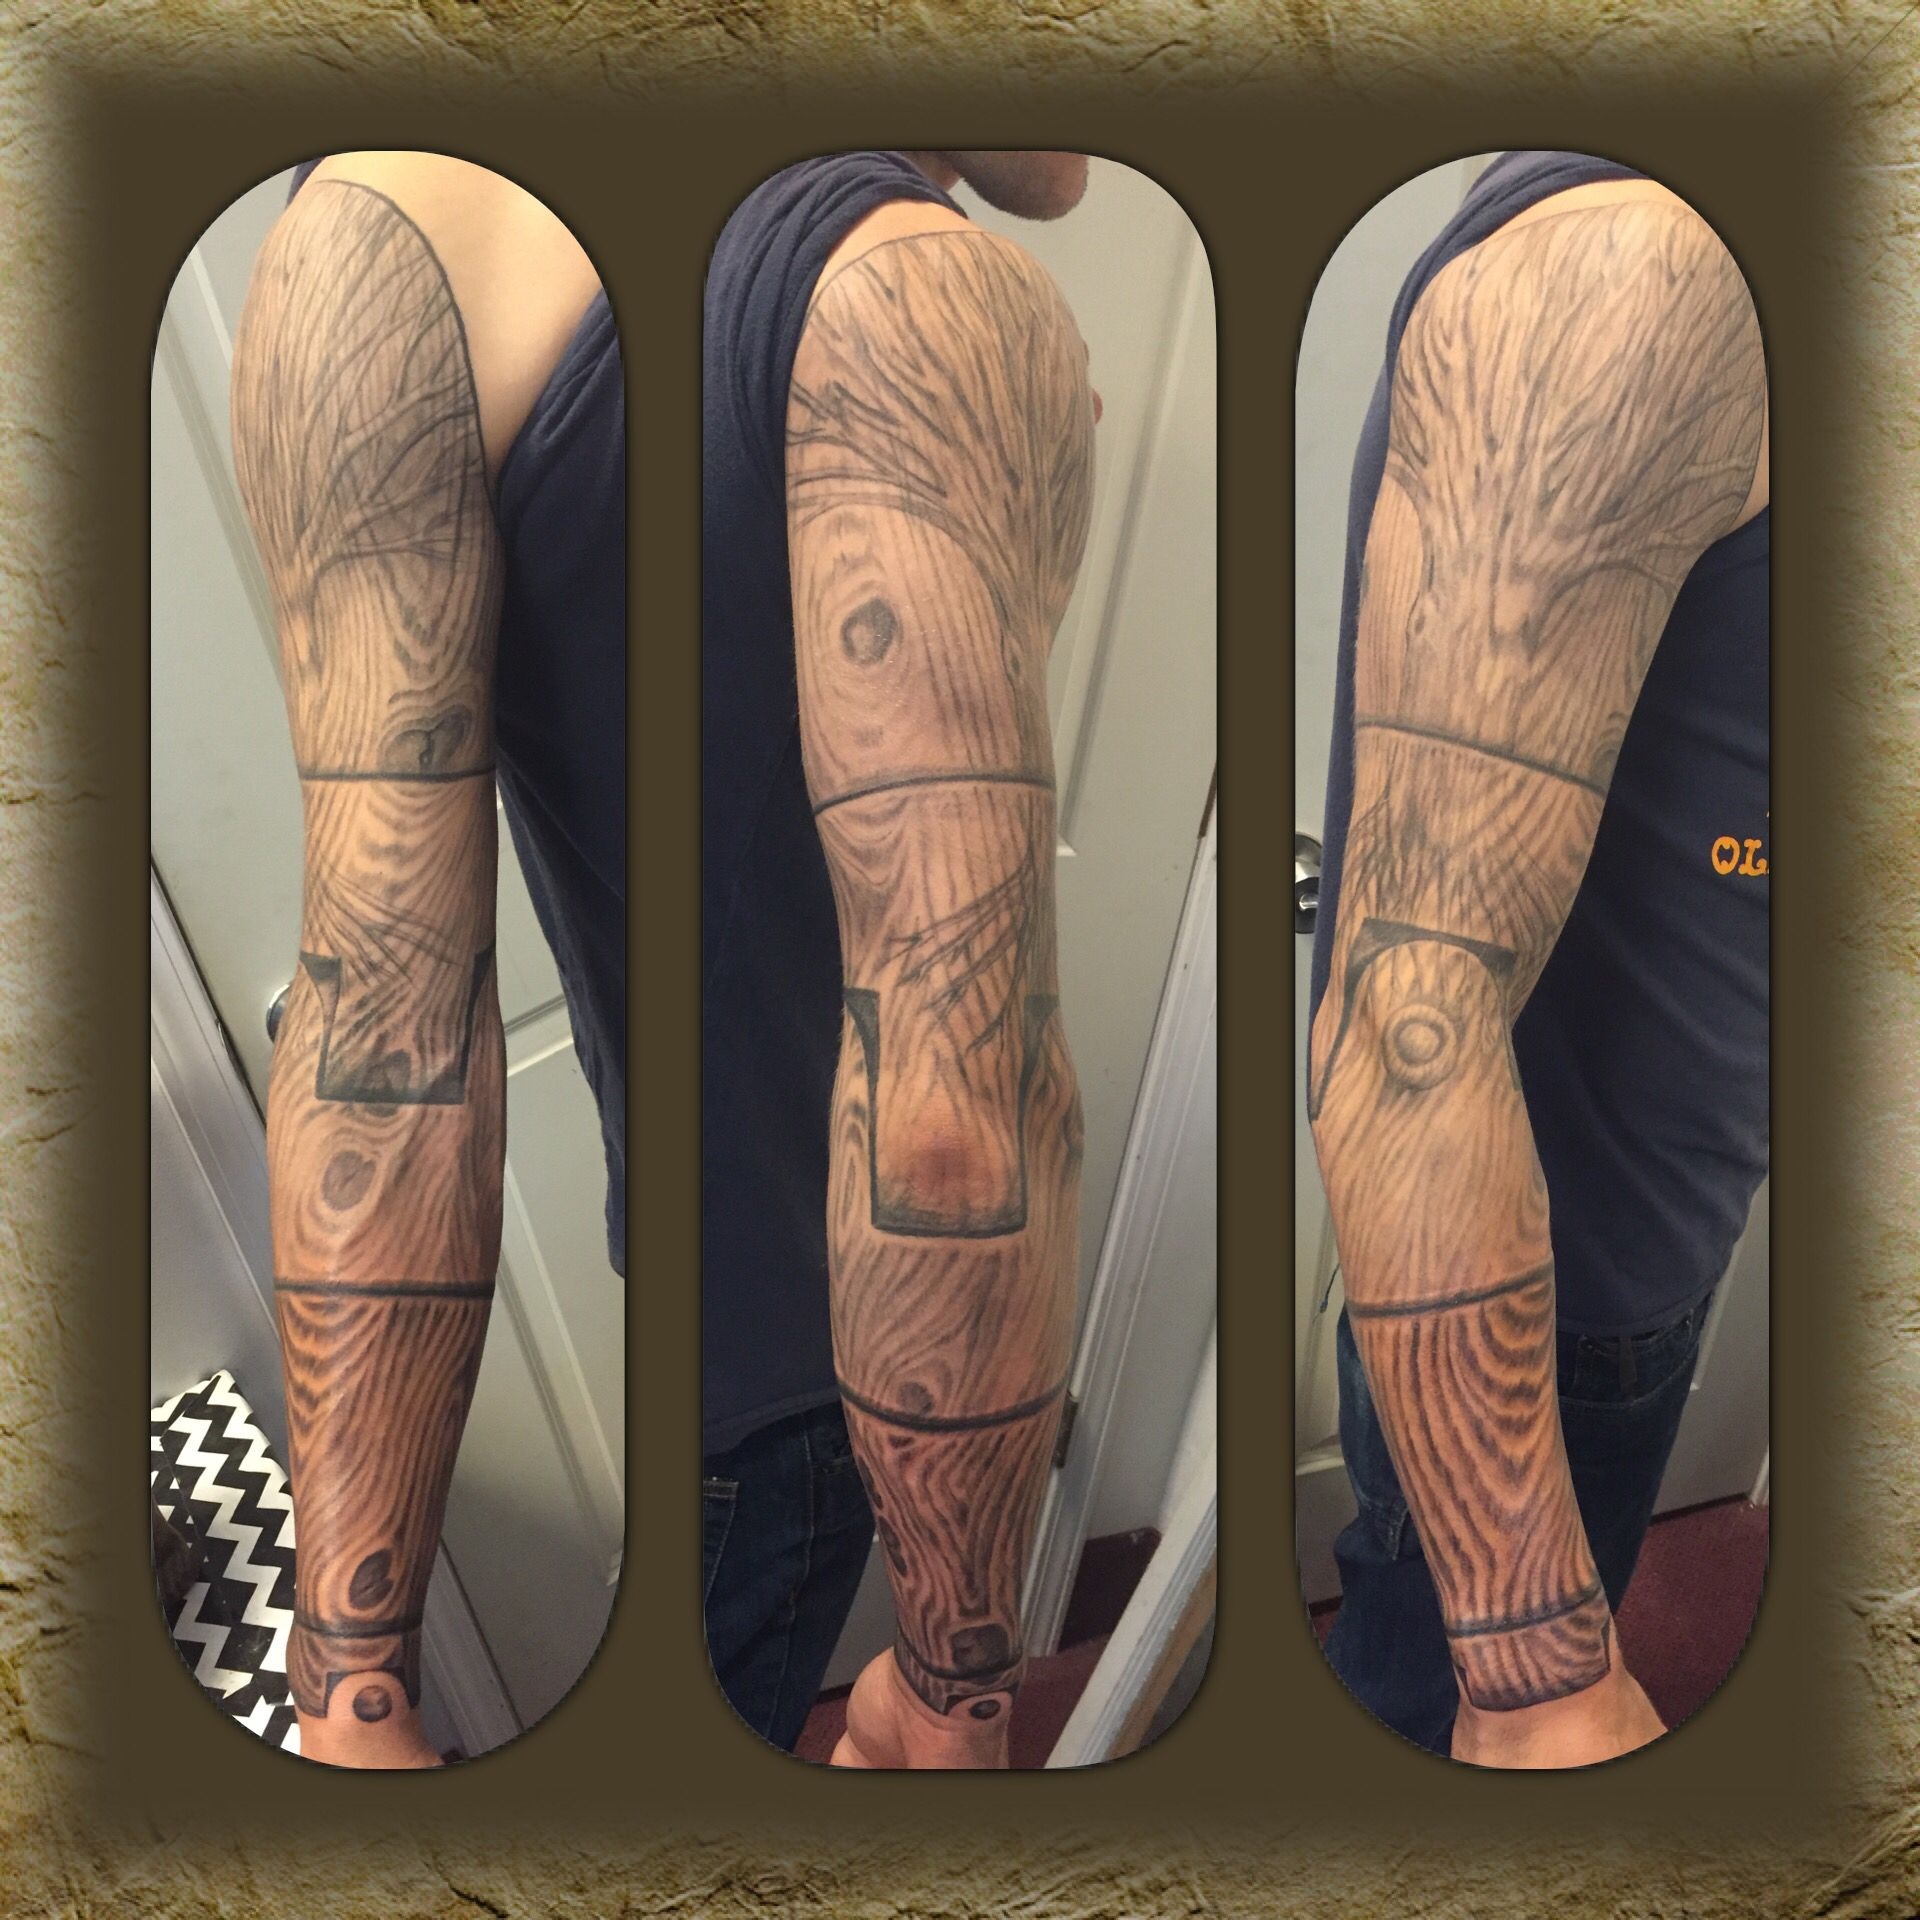 A woodworker's sleeve, by Travis Ink tattoo, Tattoos